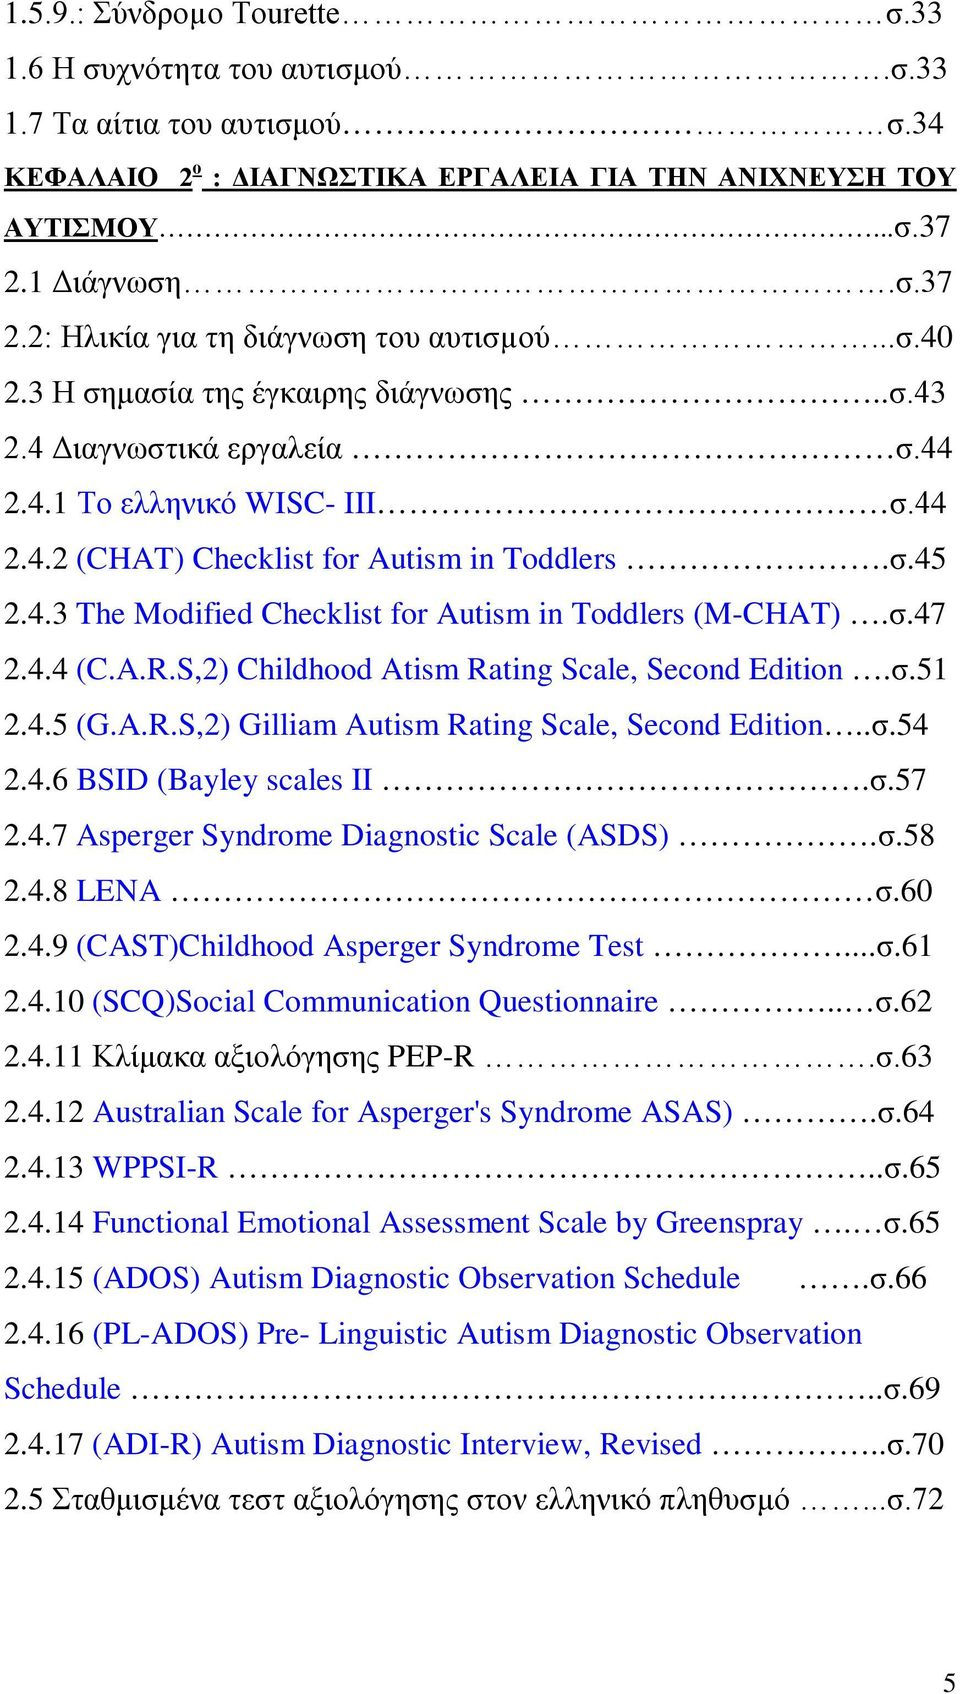 σ.45 2.4.3 The Modified Checklist for Autism in Toddlers (M-CHAT).σ.47 2.4.4 (C.A.R.S,2) Childhood Atism Rating Scale, Second Edition.σ.51 2.4.5 (G.A.R.S,2) Gilliam Autism Rating Scale, Second Edition.